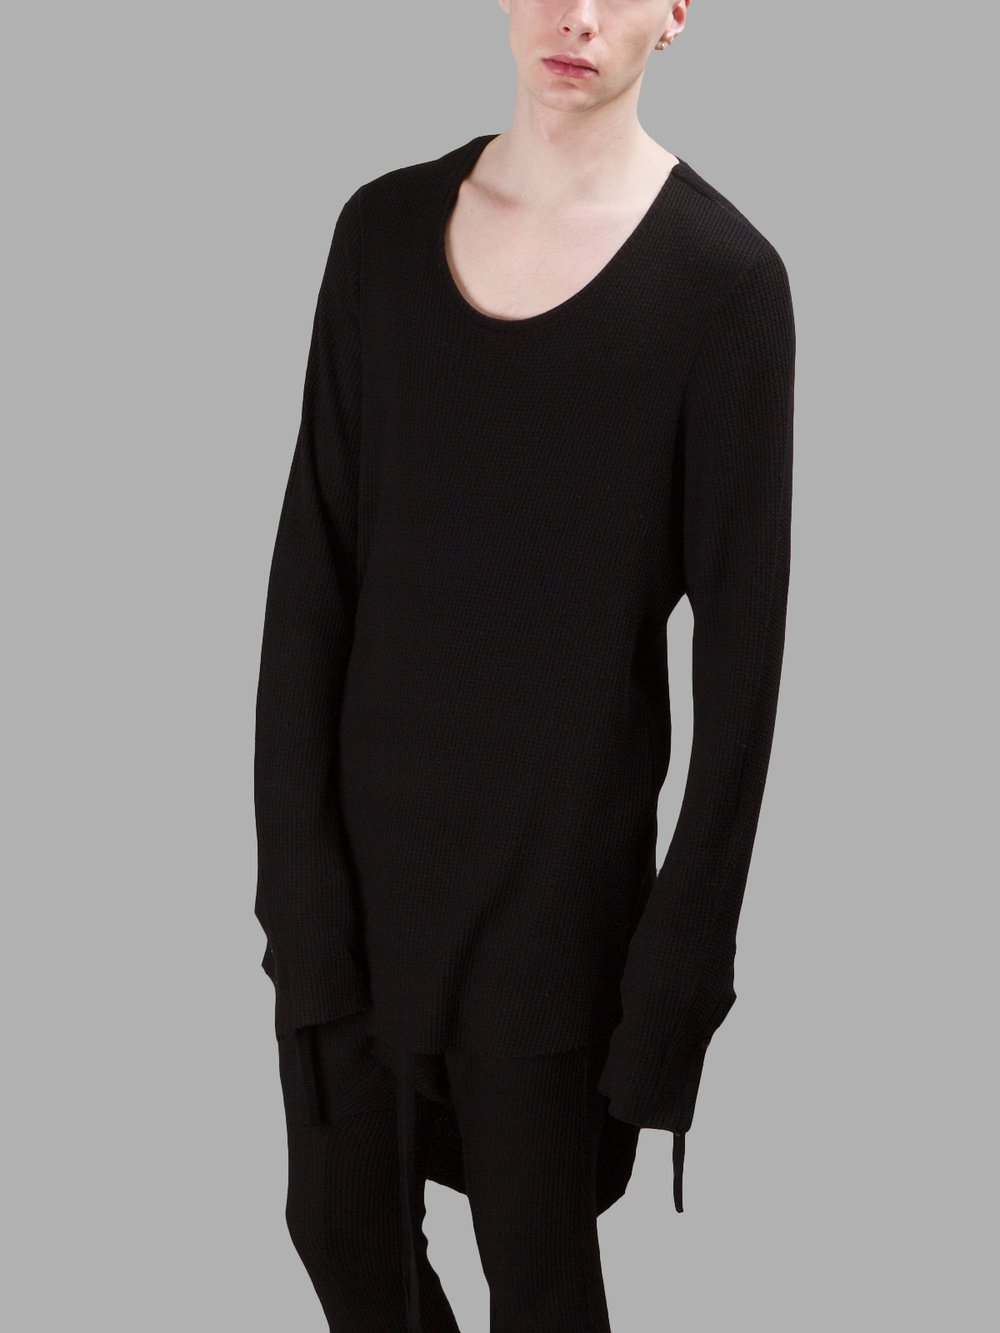 Image of CEDRIC JACQUEMYN Sweaters